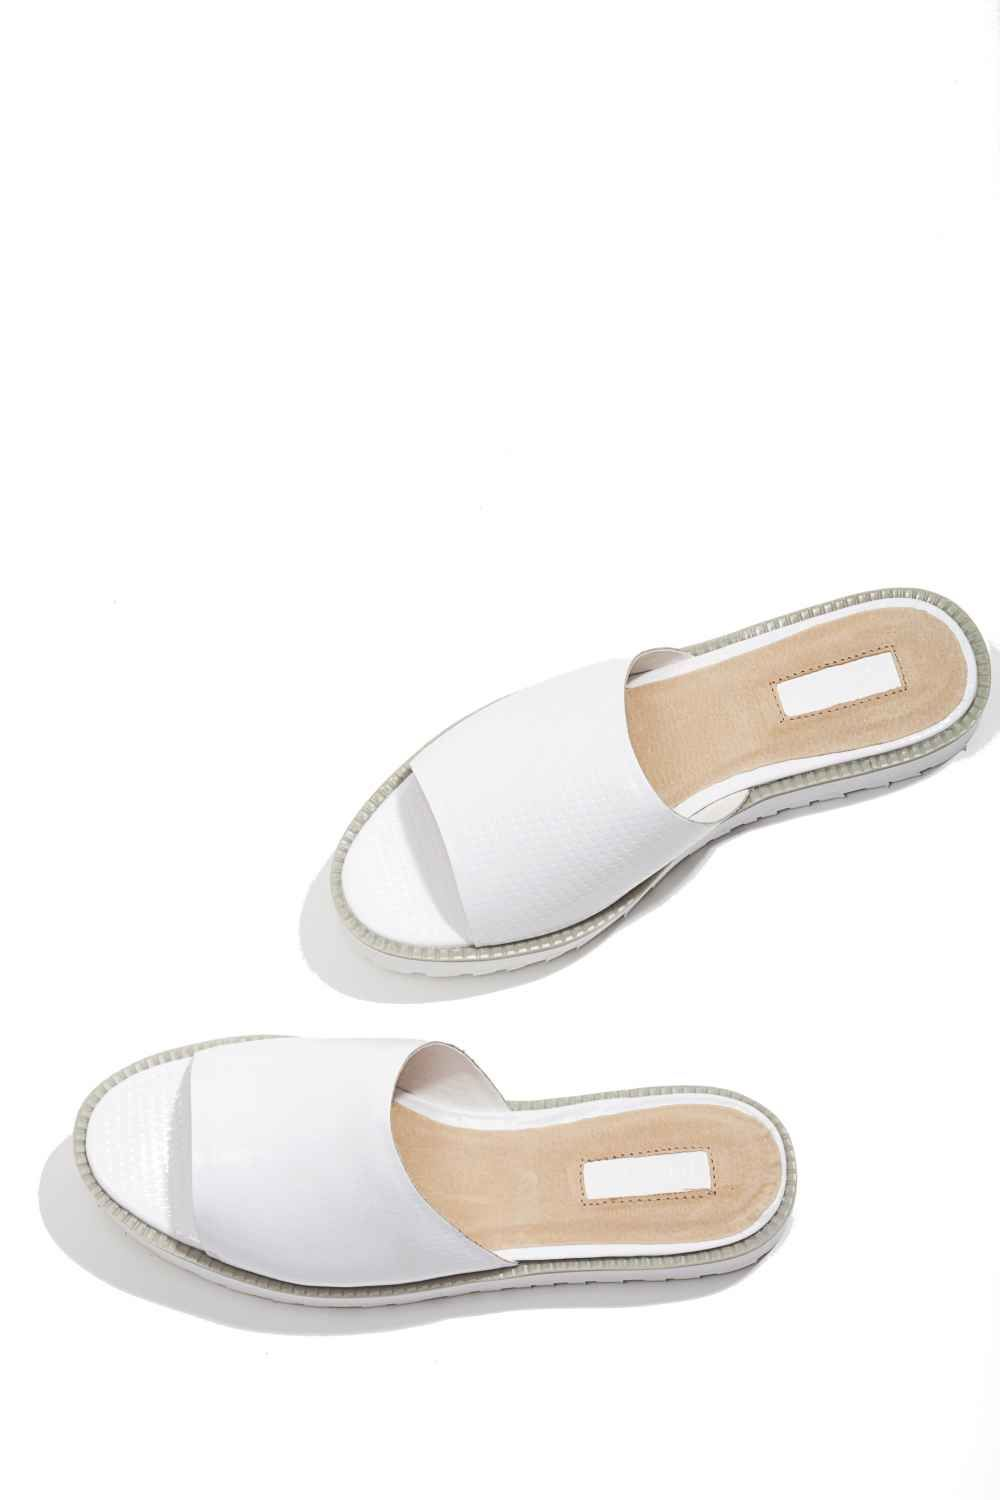 4c07a5ddf70c Minimalist Preference Sandal in Silver in 6.5